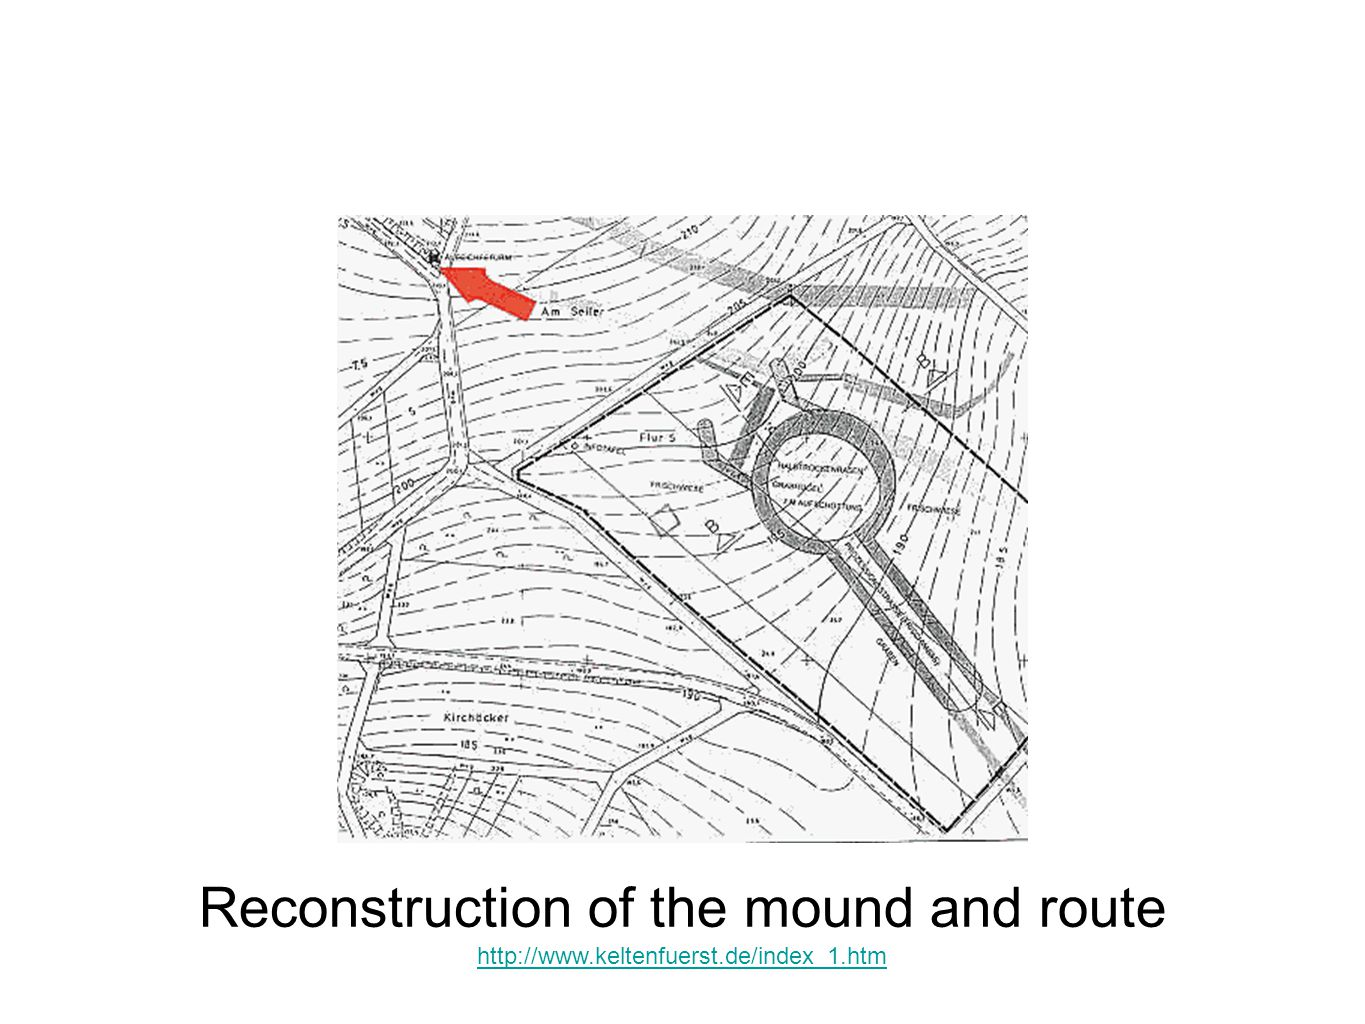 Reconstruction of the mound and route